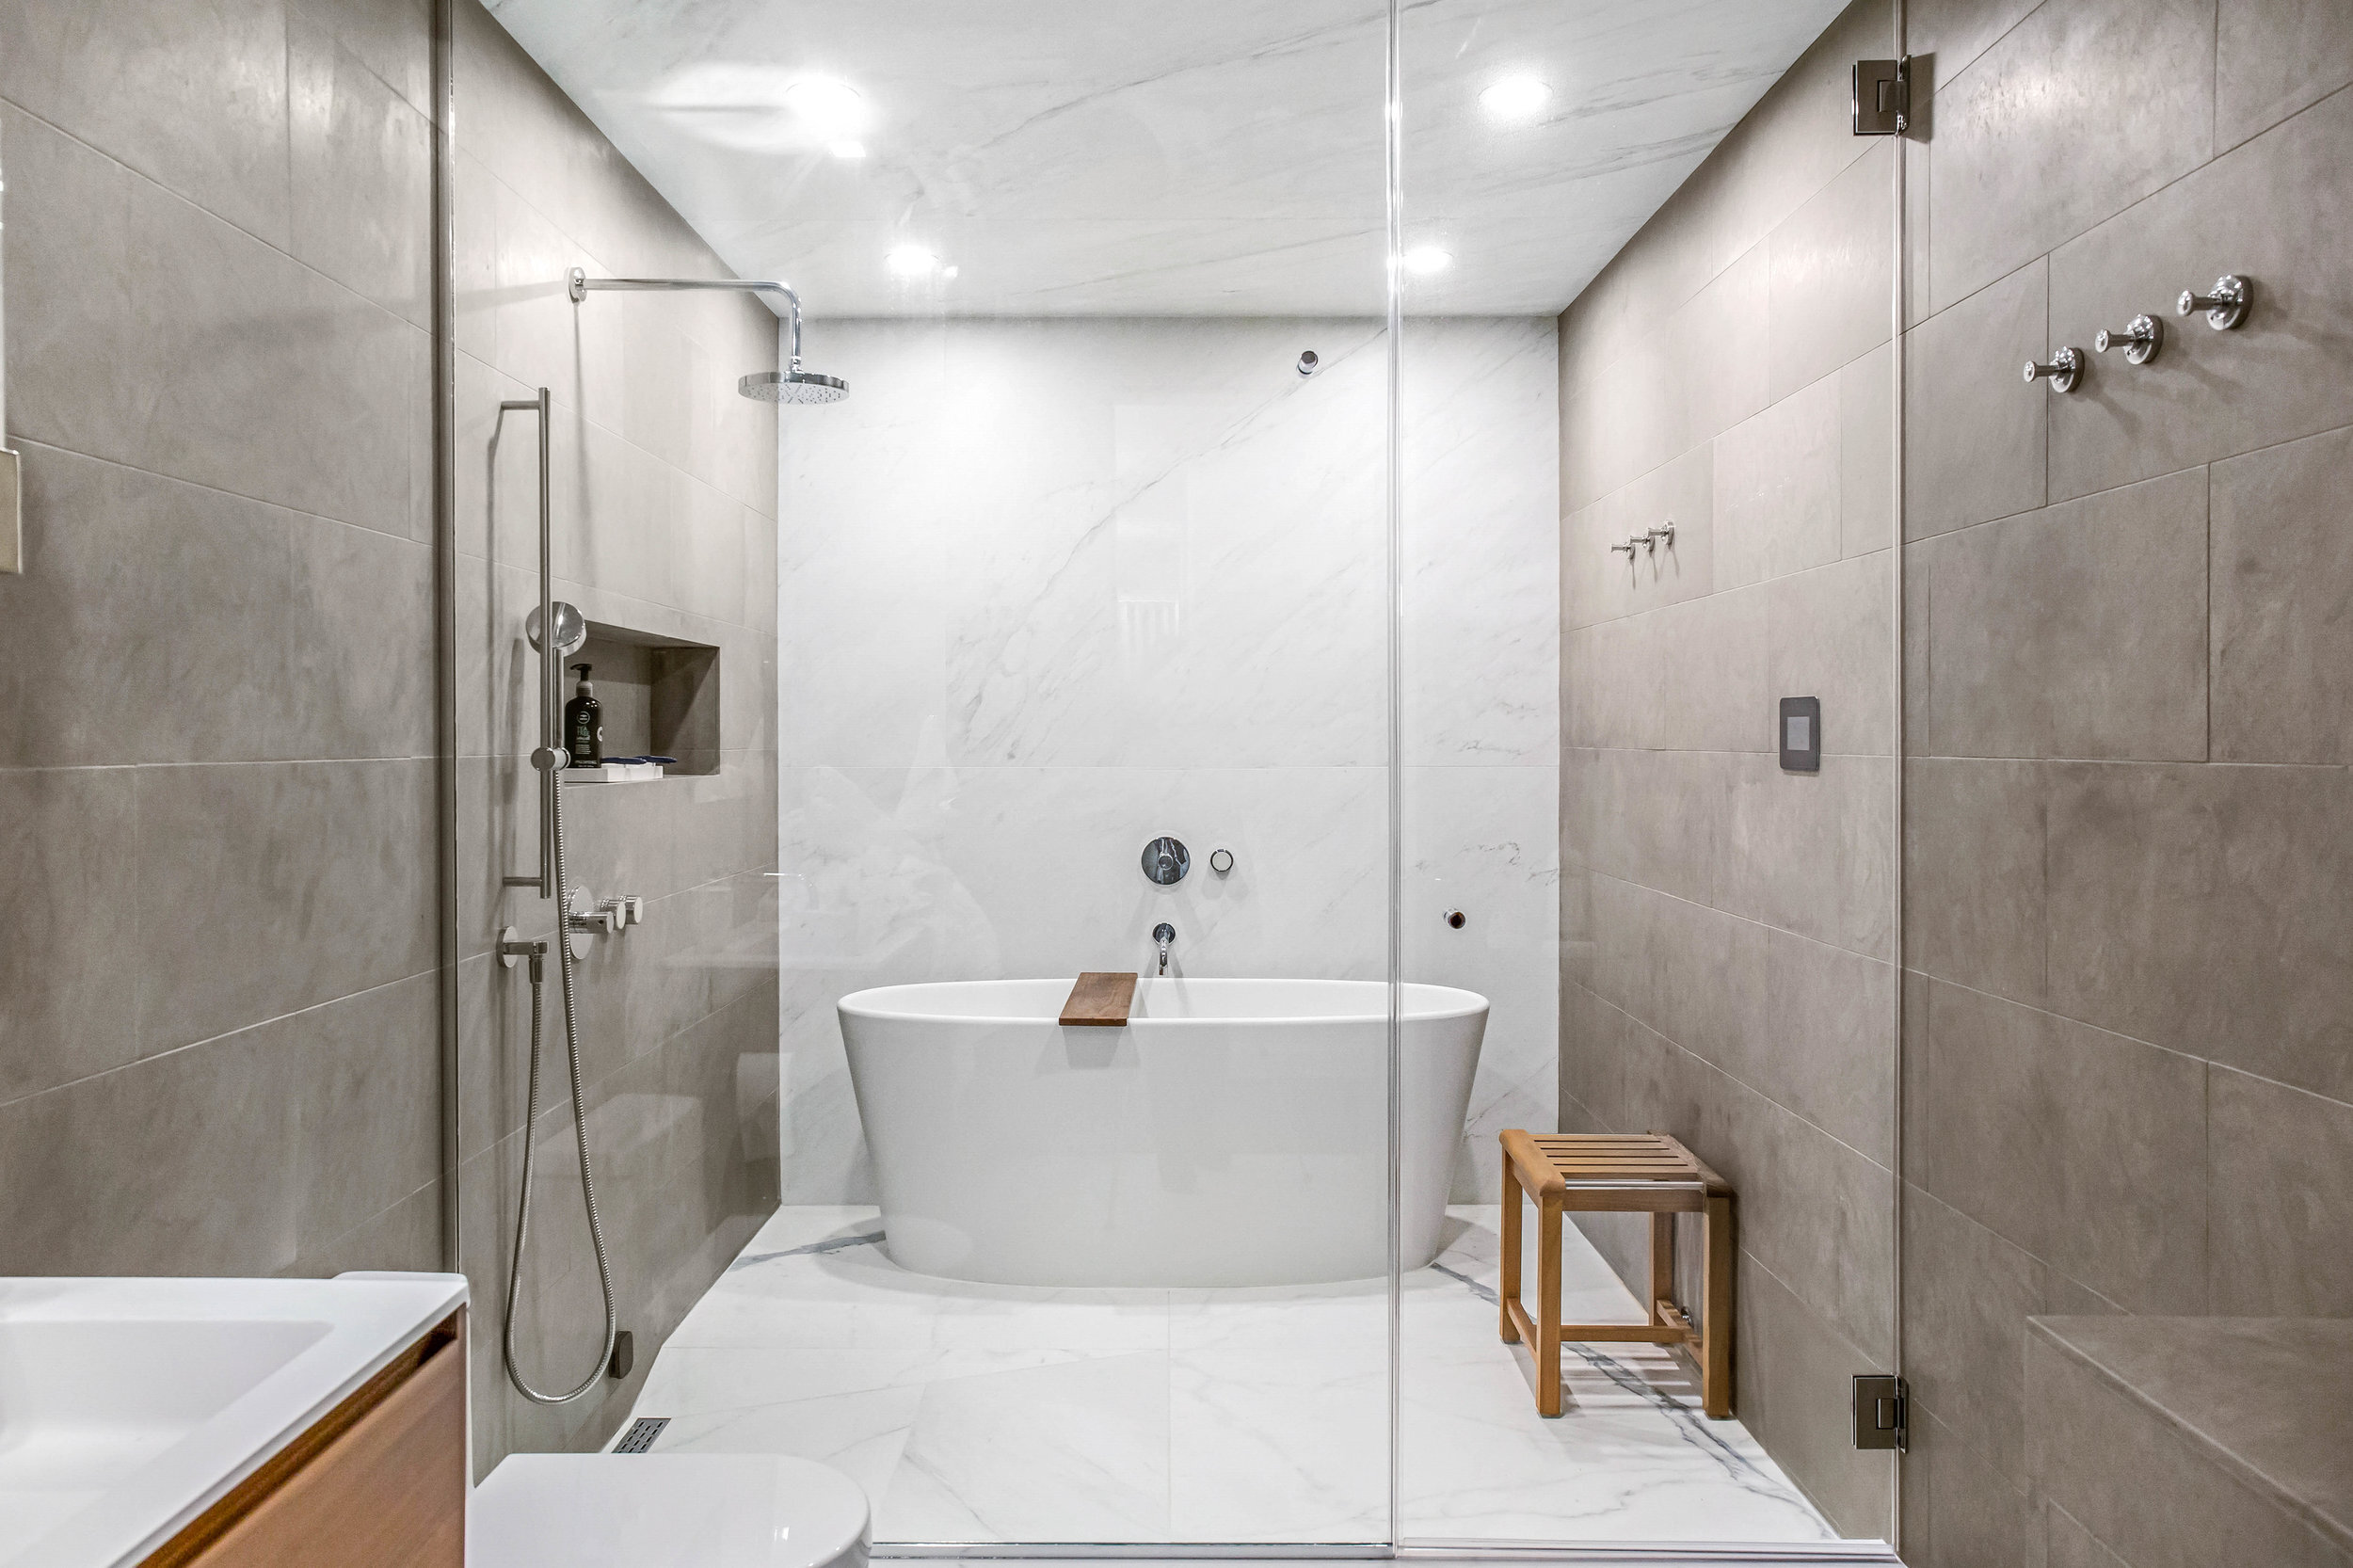 residential-projects-Chelsea-comp6.jpg